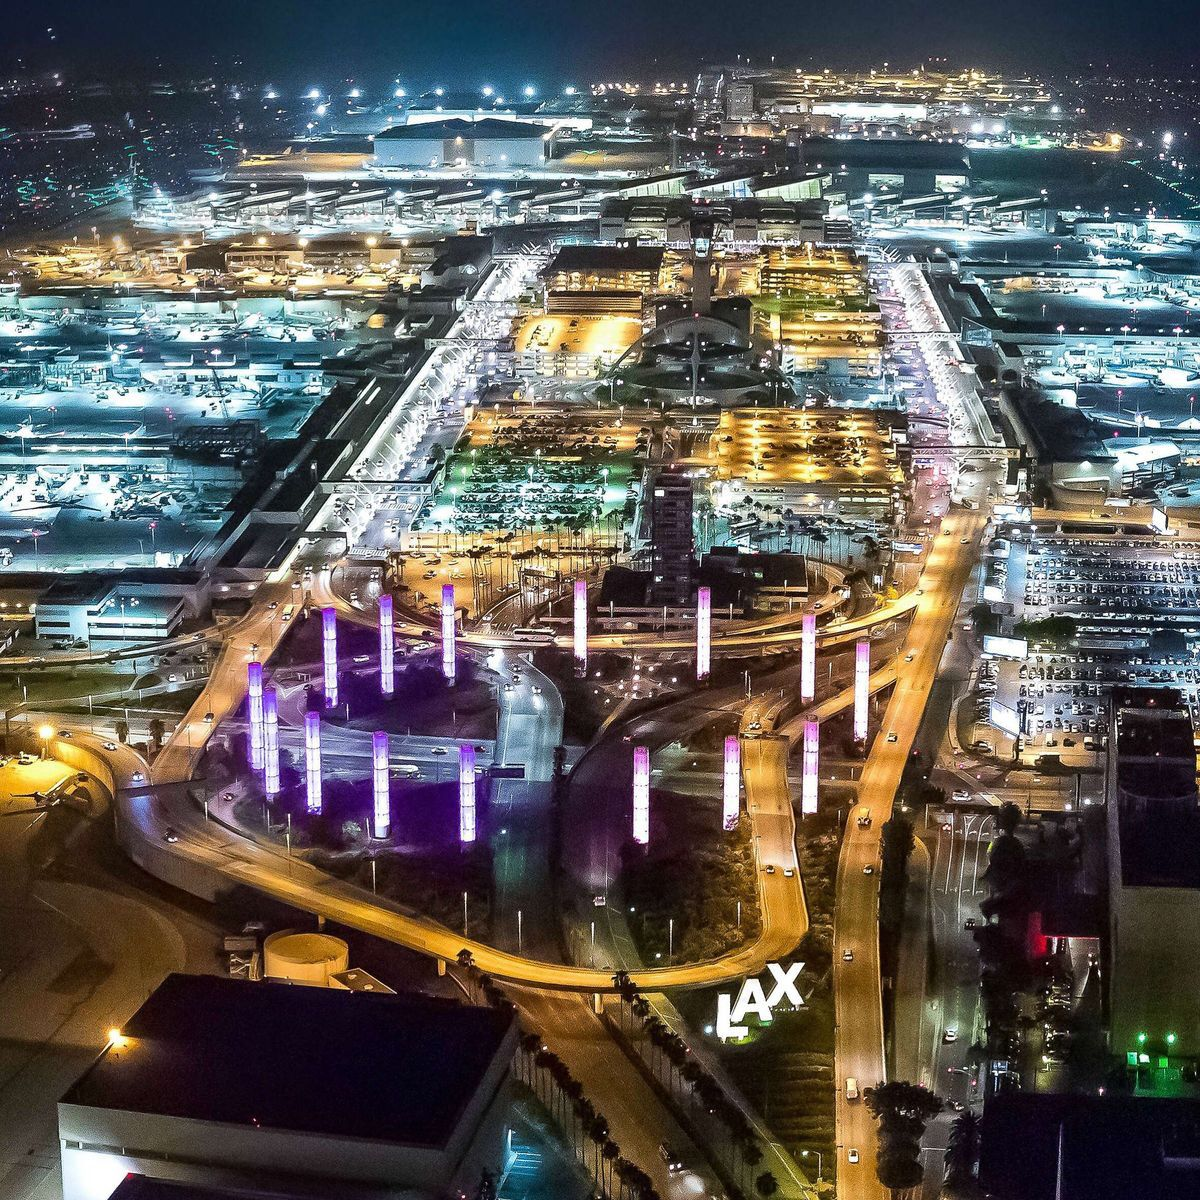 Lax At Night Los Angeles International Airport Airport Design Cruise Travel